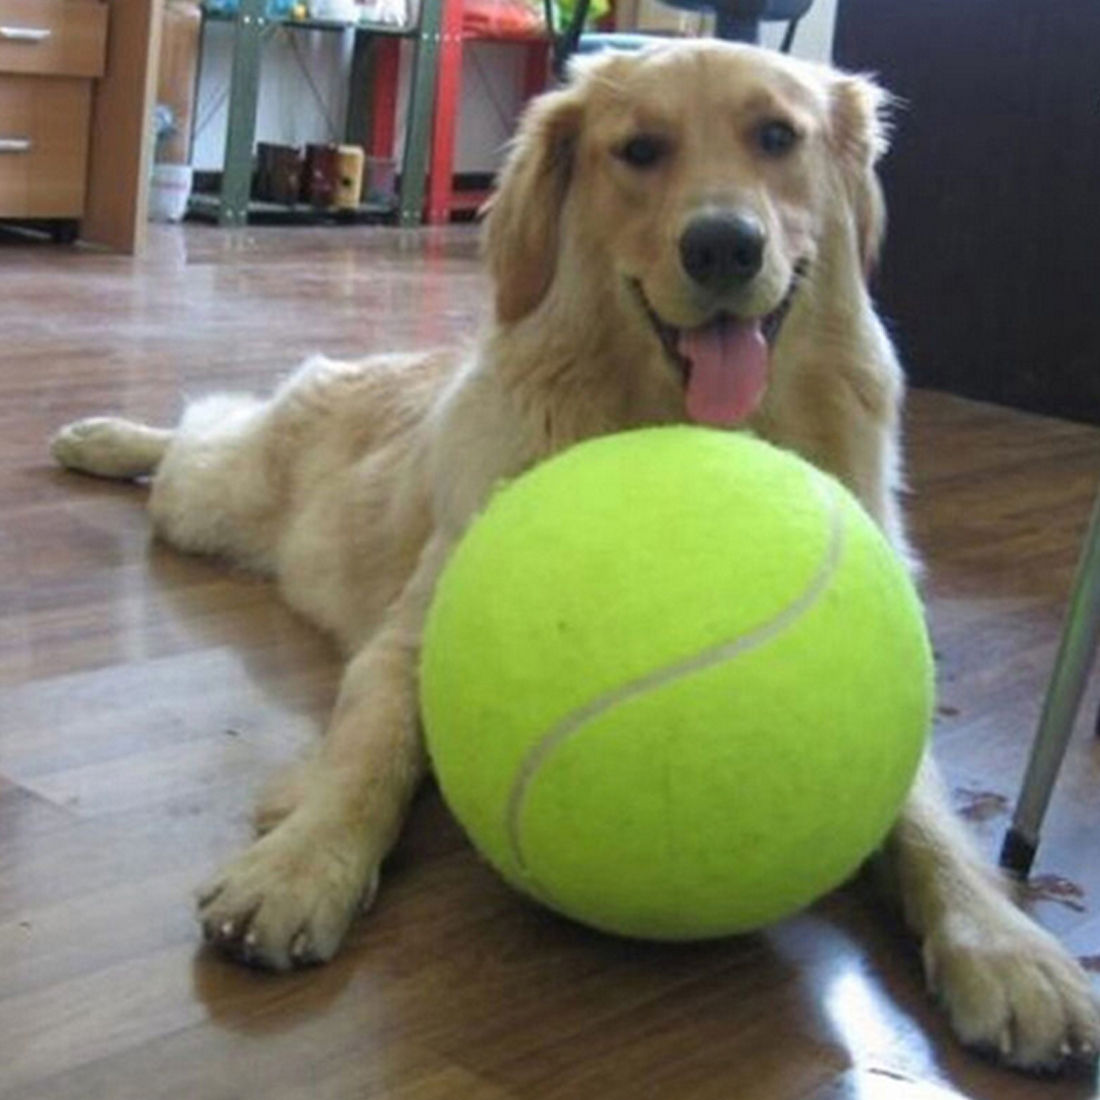 Top Sale Dog Tennis Ball Giant Pet Toy Tennis Ball Dog Chew Toy Ball For Dogs Supplies